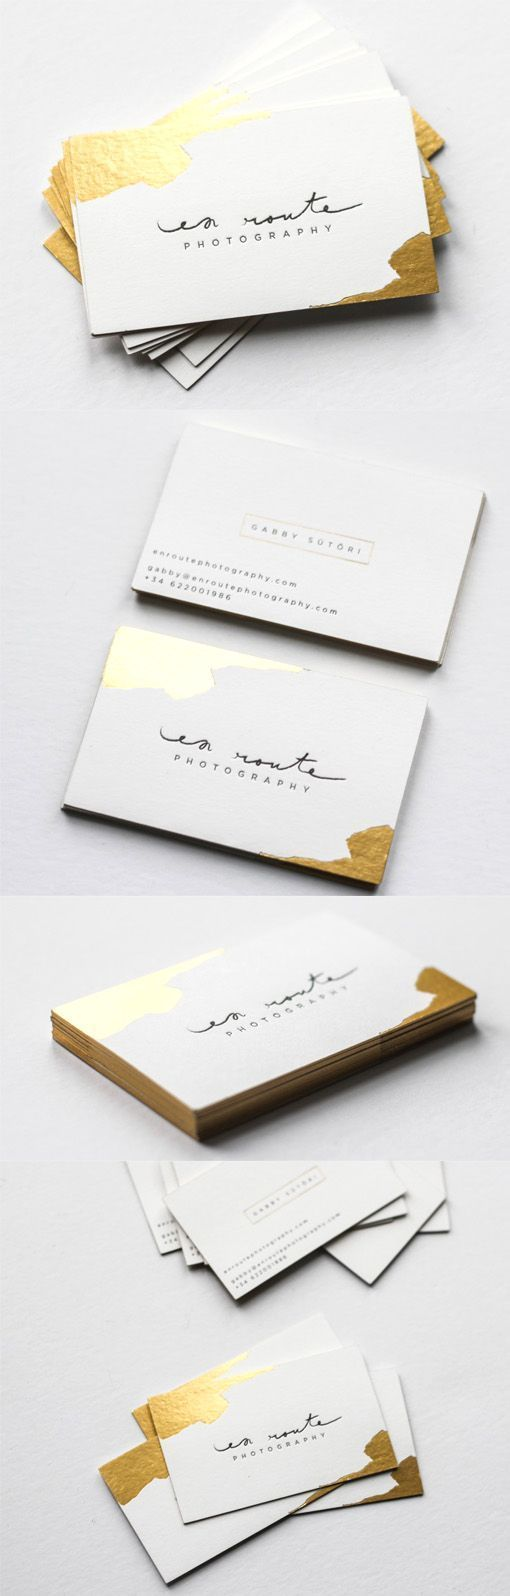 Best 25+ Business card design ideas on Pinterest | Visiting card ...